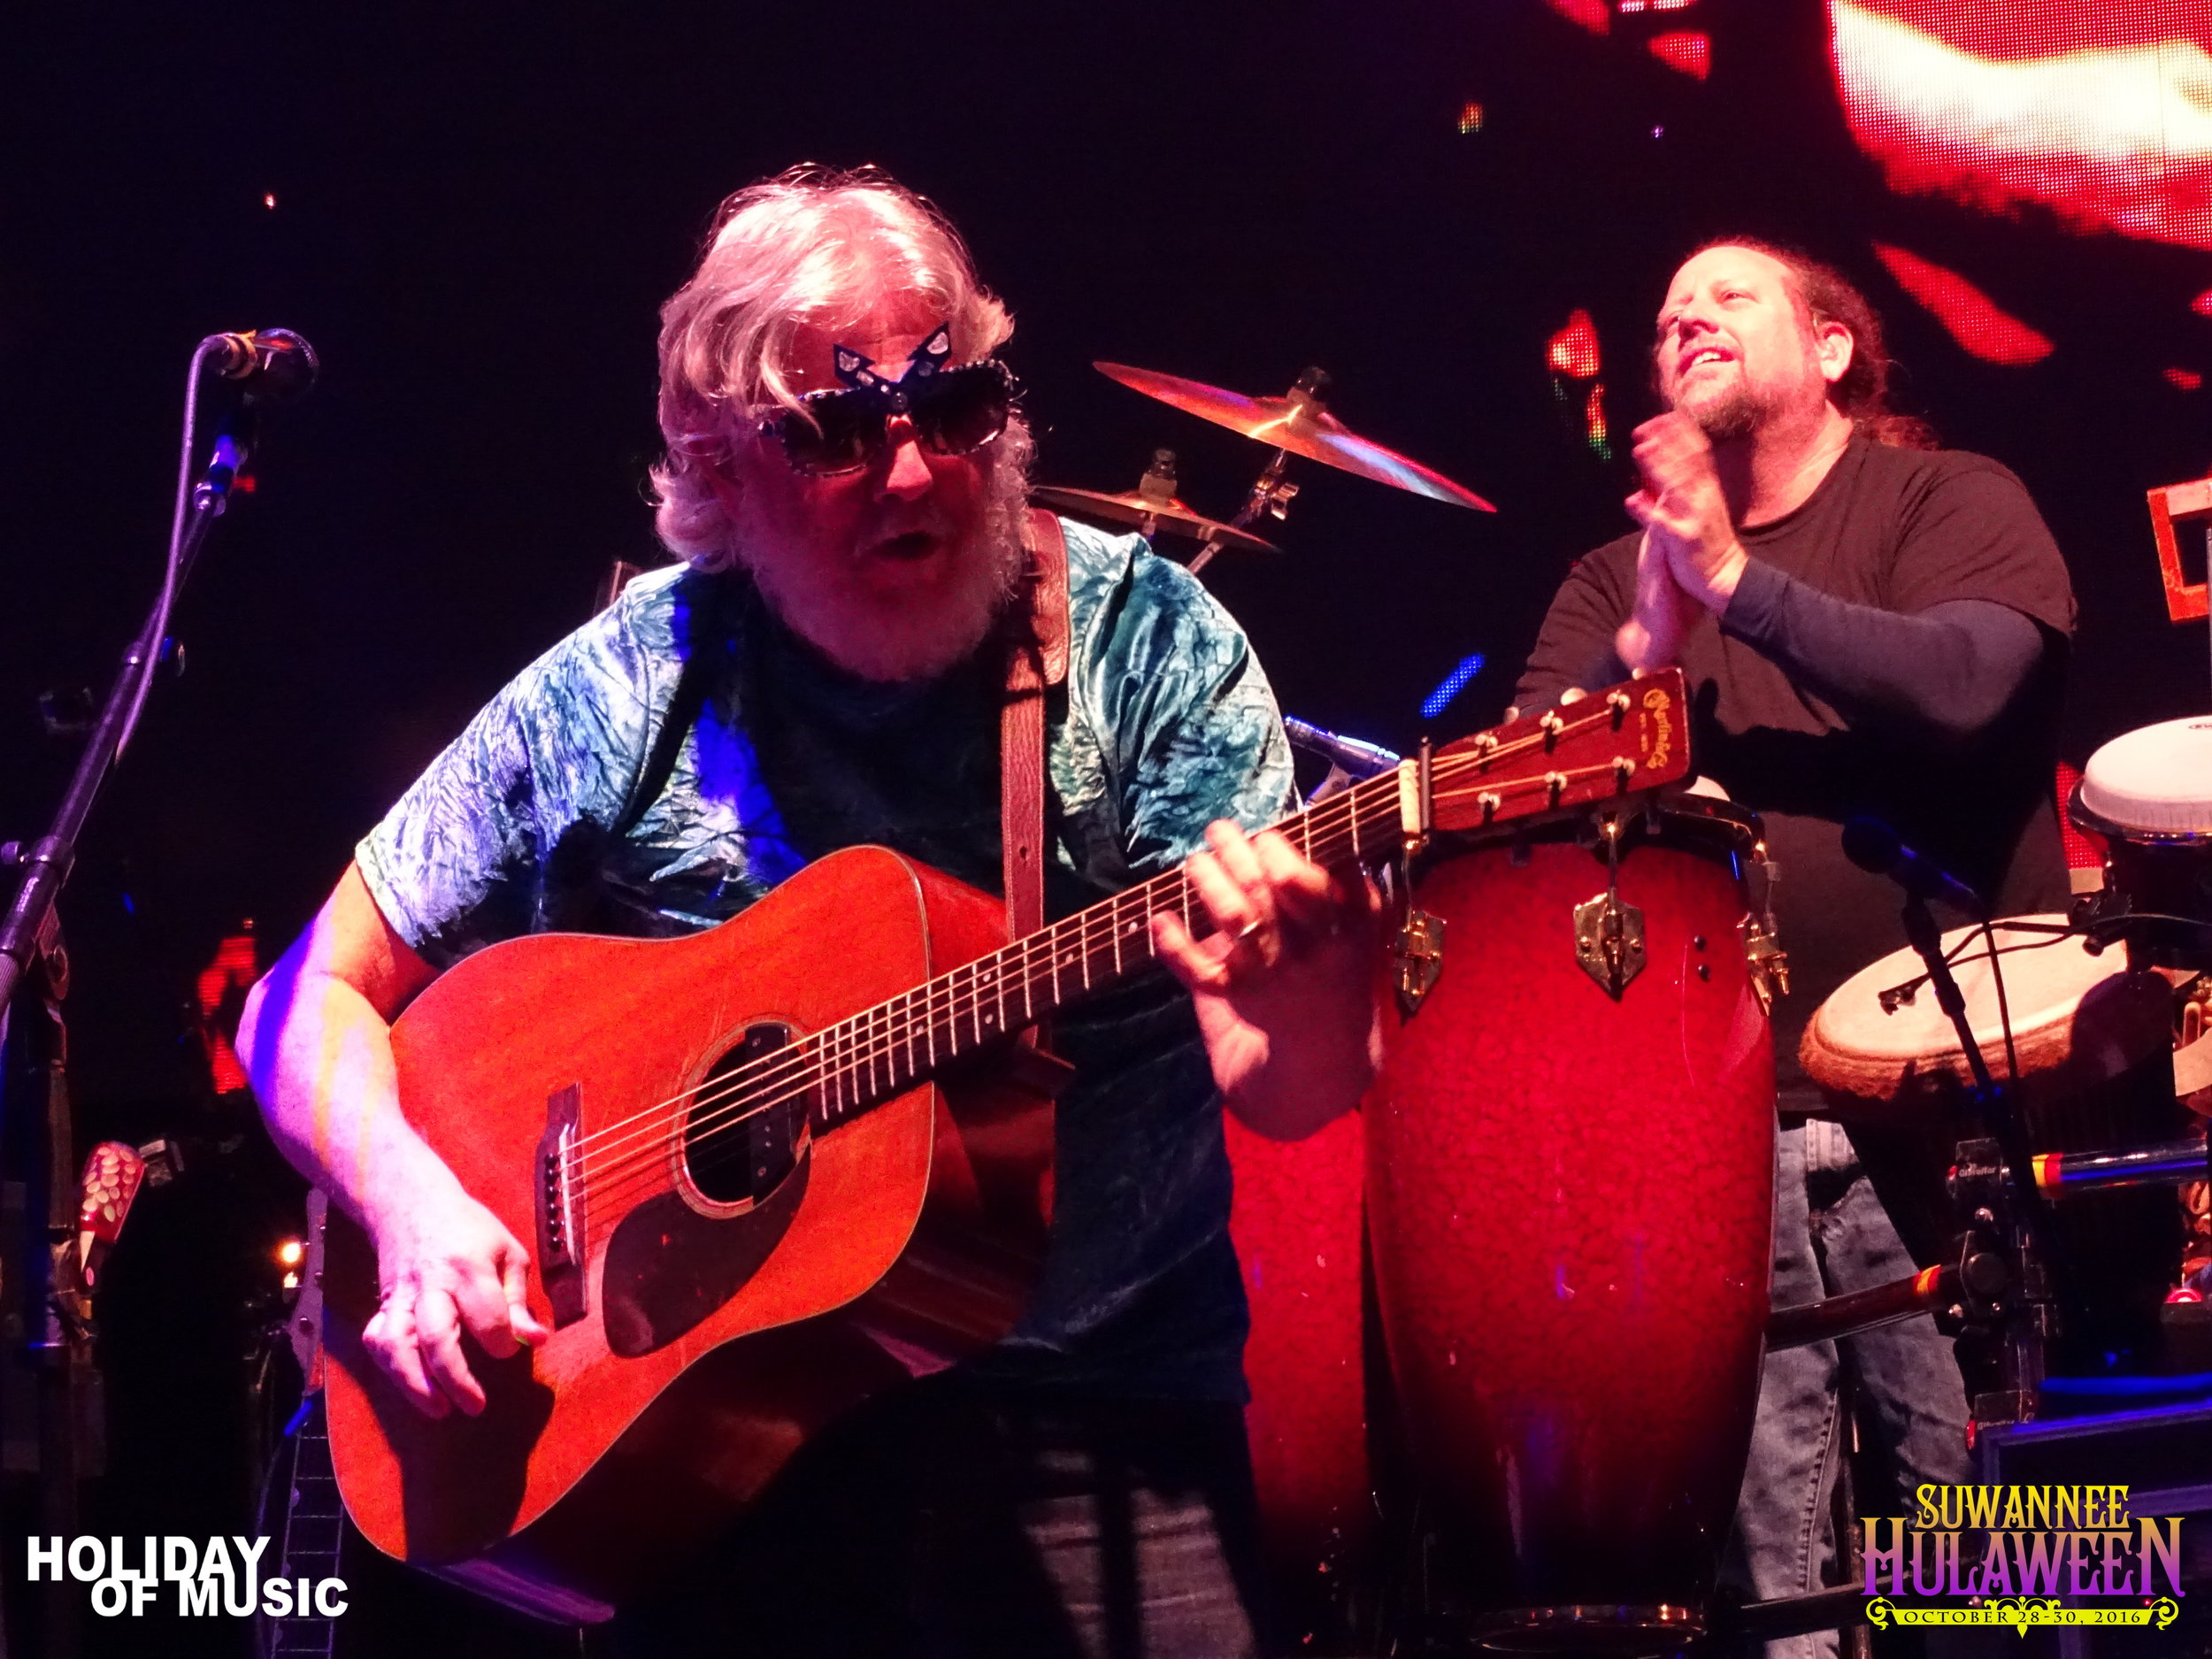 The String Cheese Incident - Suwannee Hulaween 2016